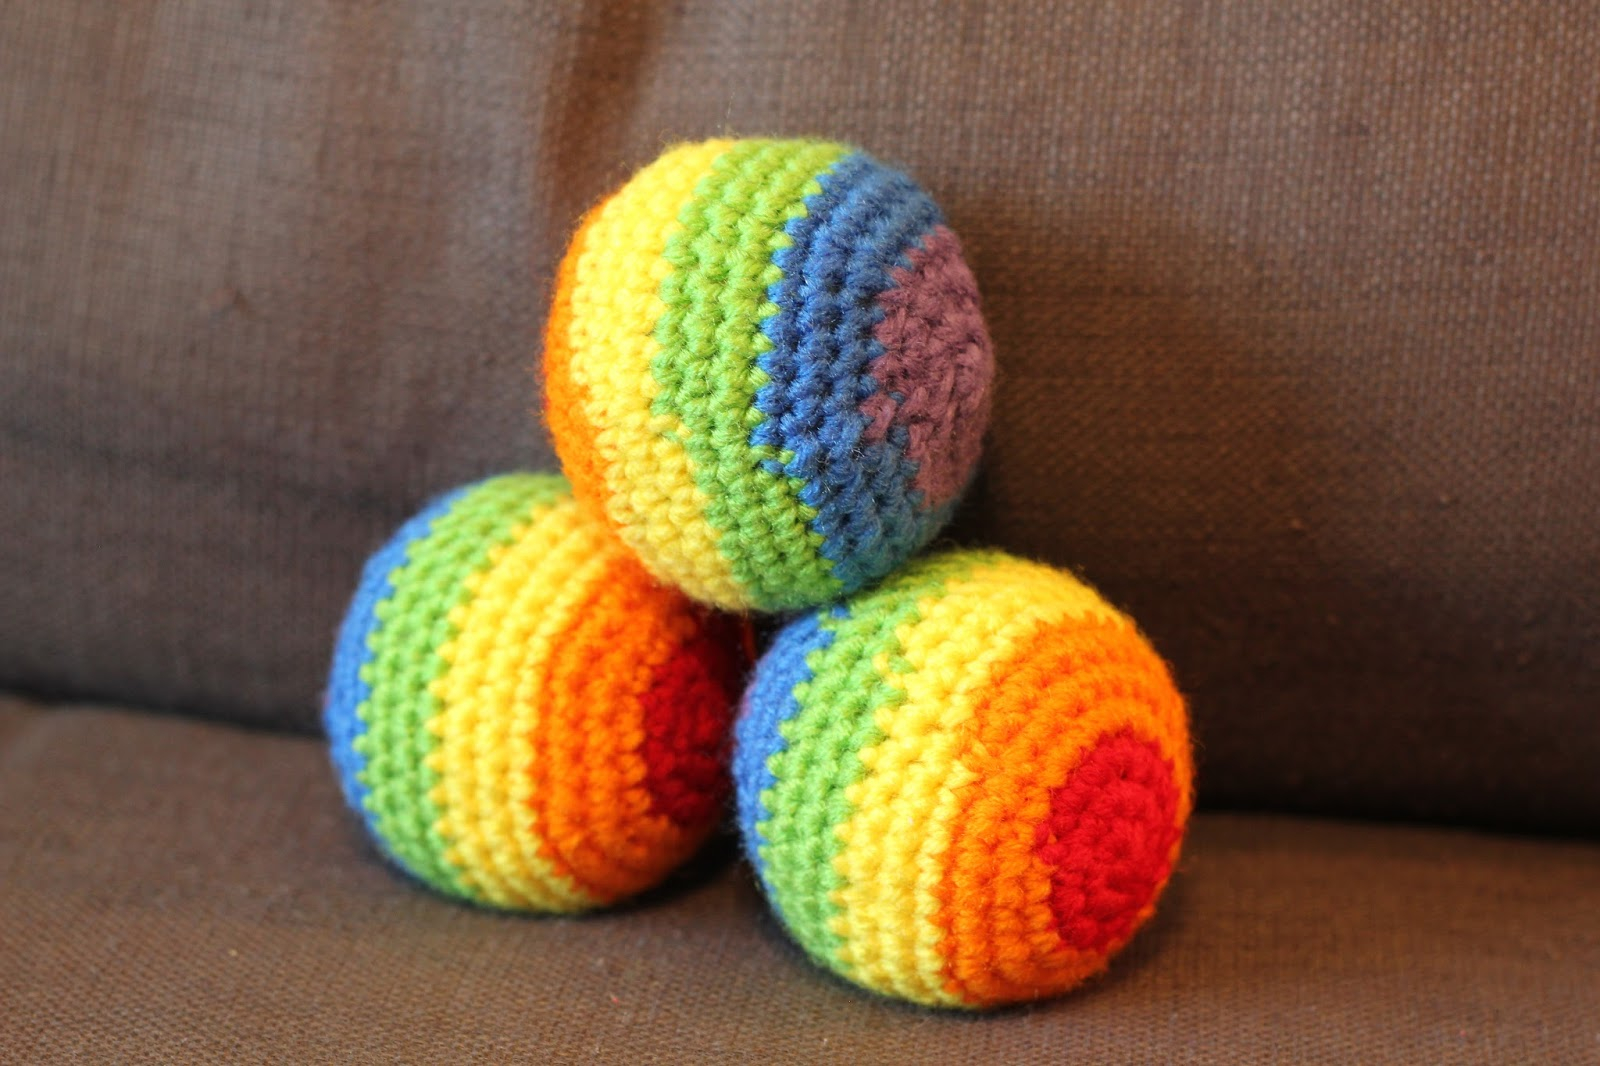 Crochet Sphere Pattern Free Crafting For My Sanity Crochet Rainbow Juggling Balls Free Pattern